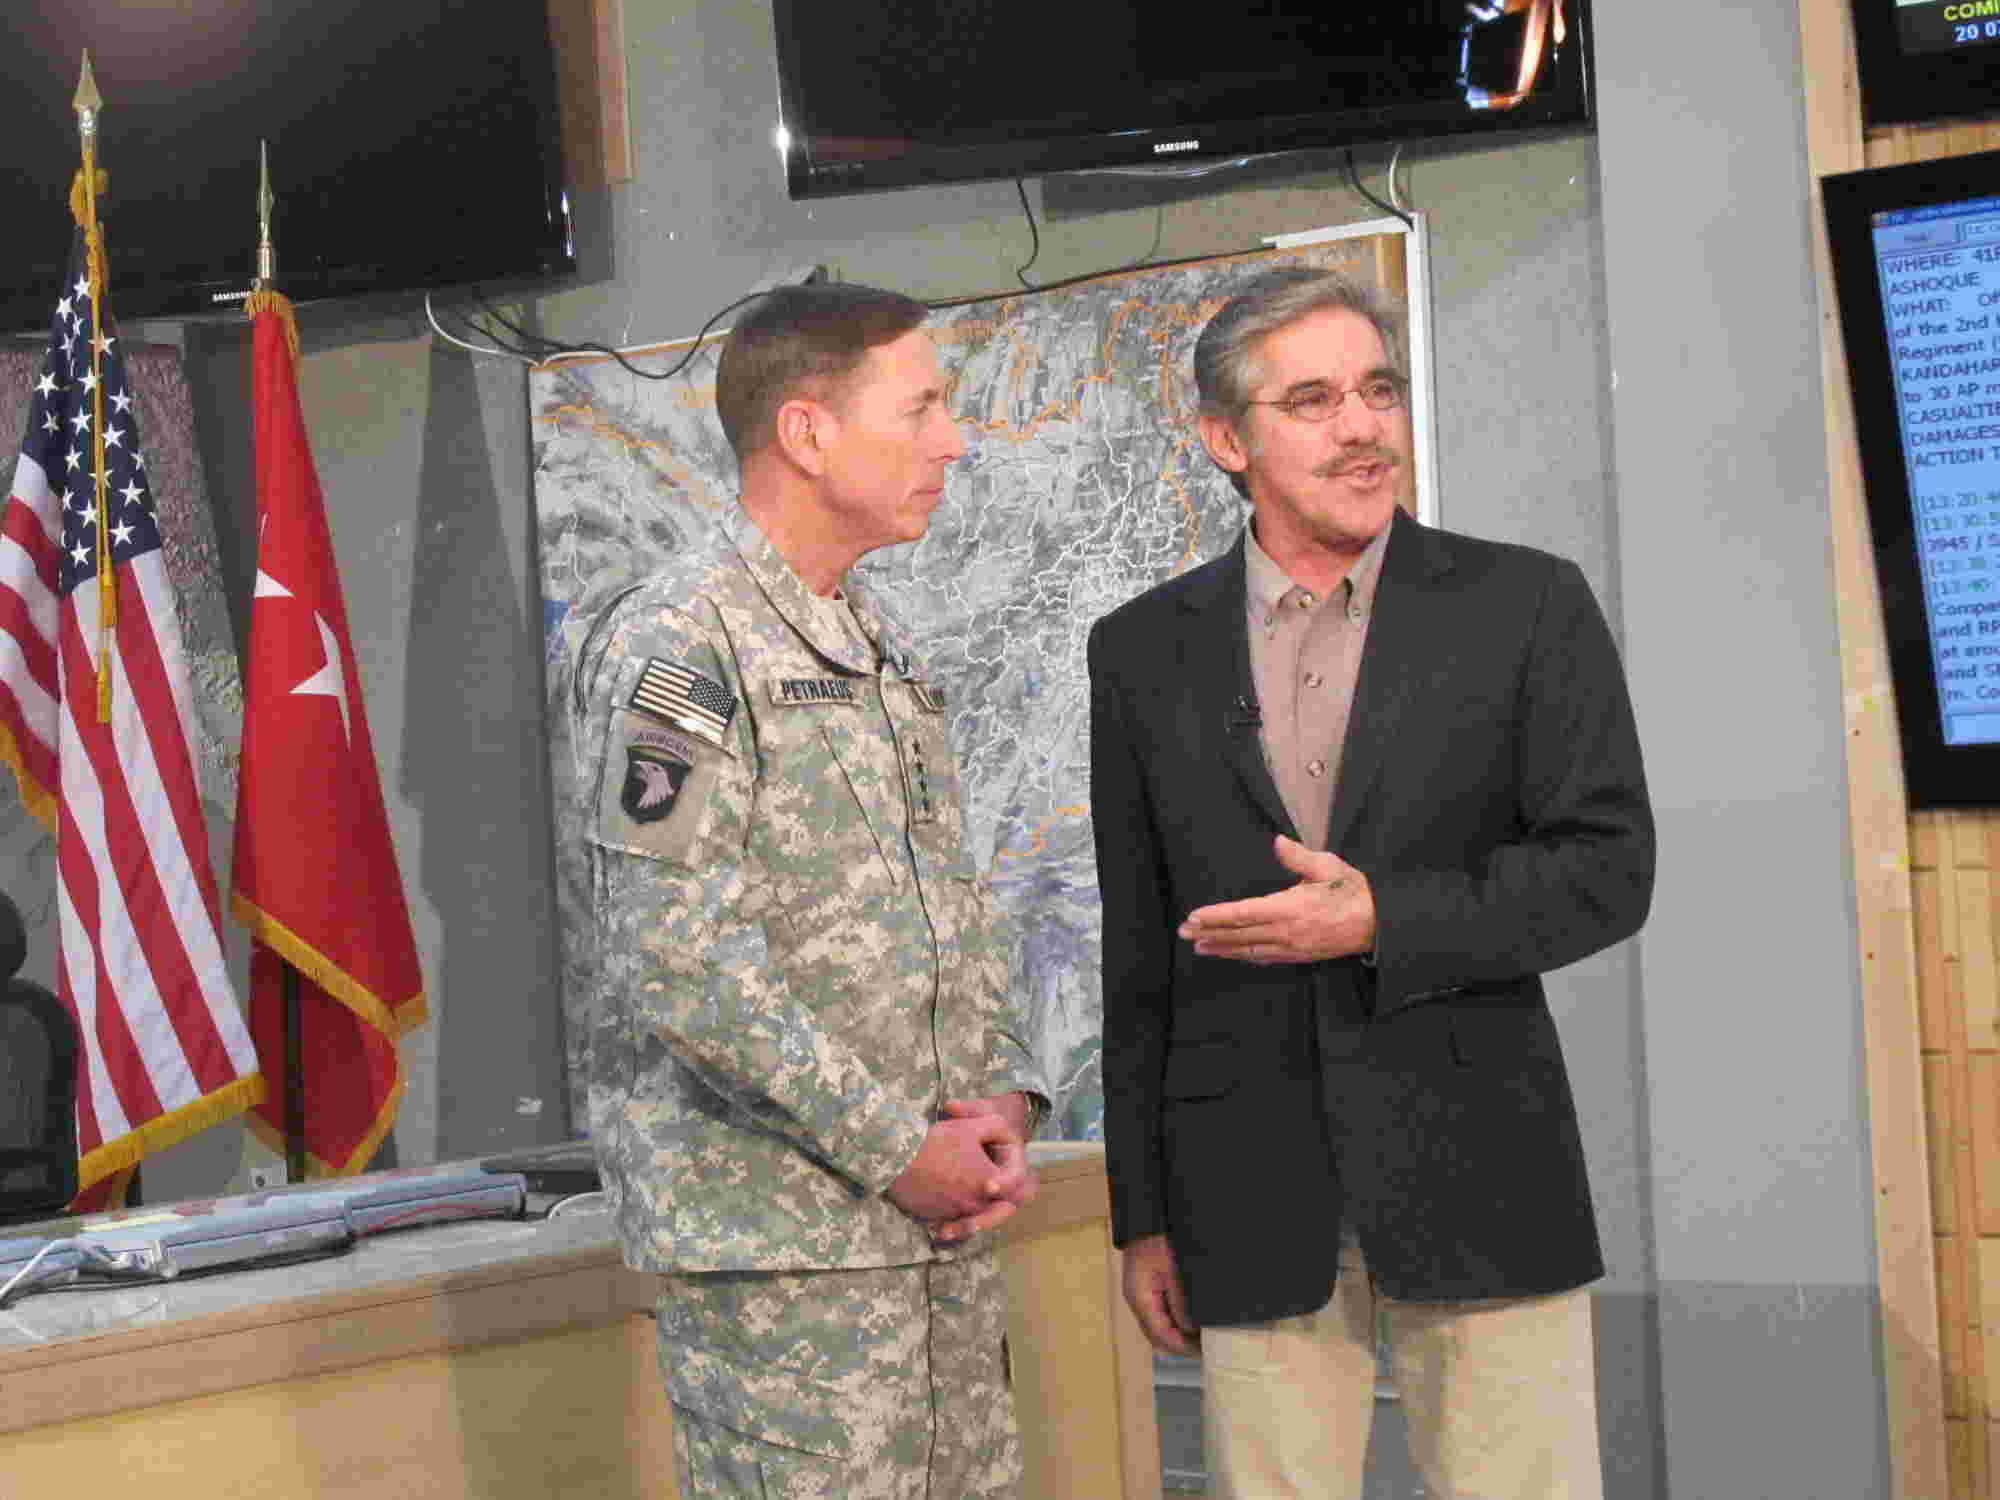 Geraldo stands with General David Petraeus, with combat map in the background